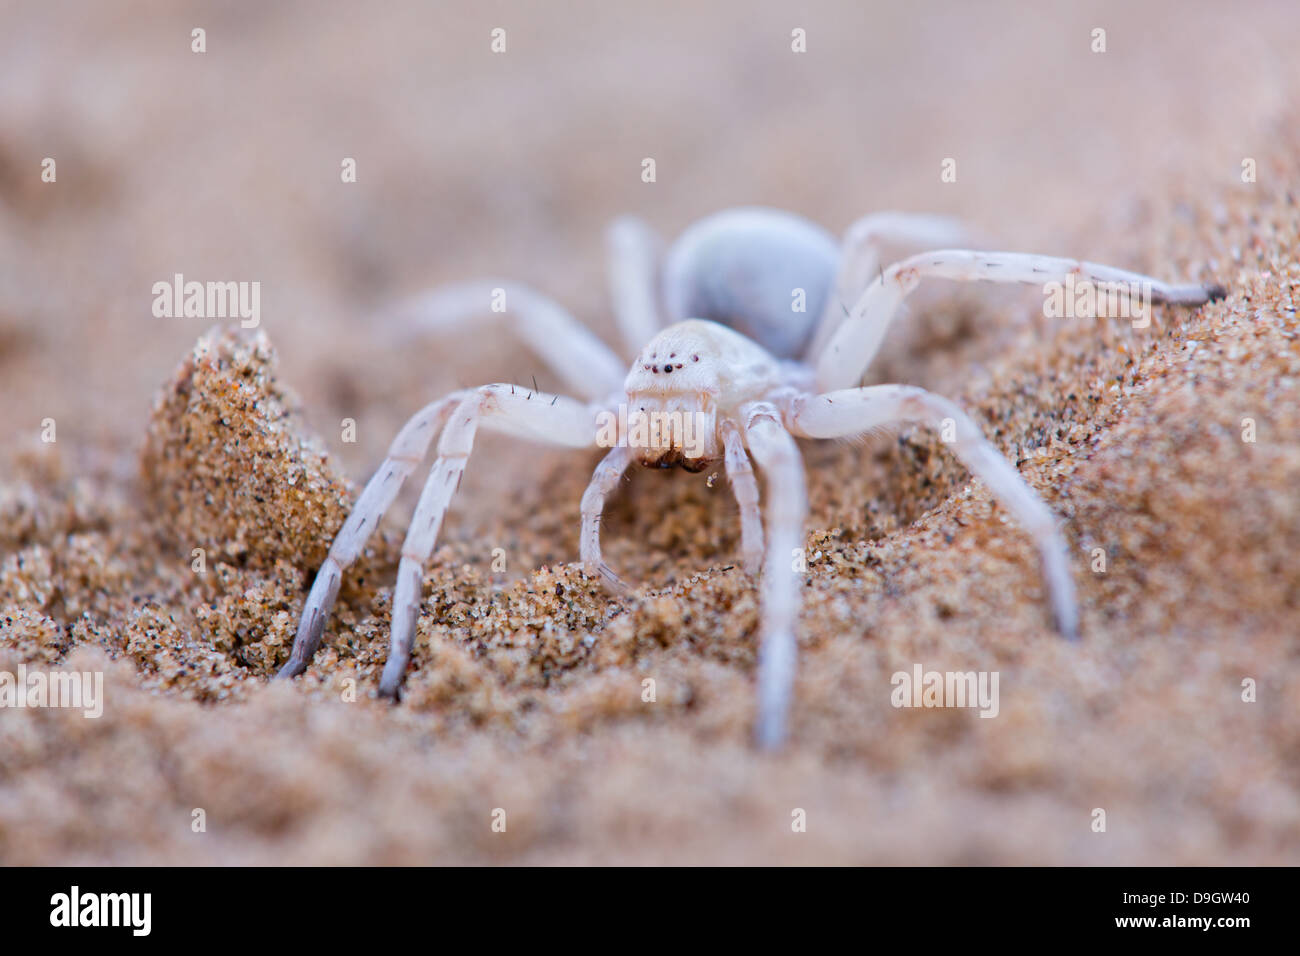 Dancing White Lady Spider Stock Photos & Dancing White Lady Spider ...